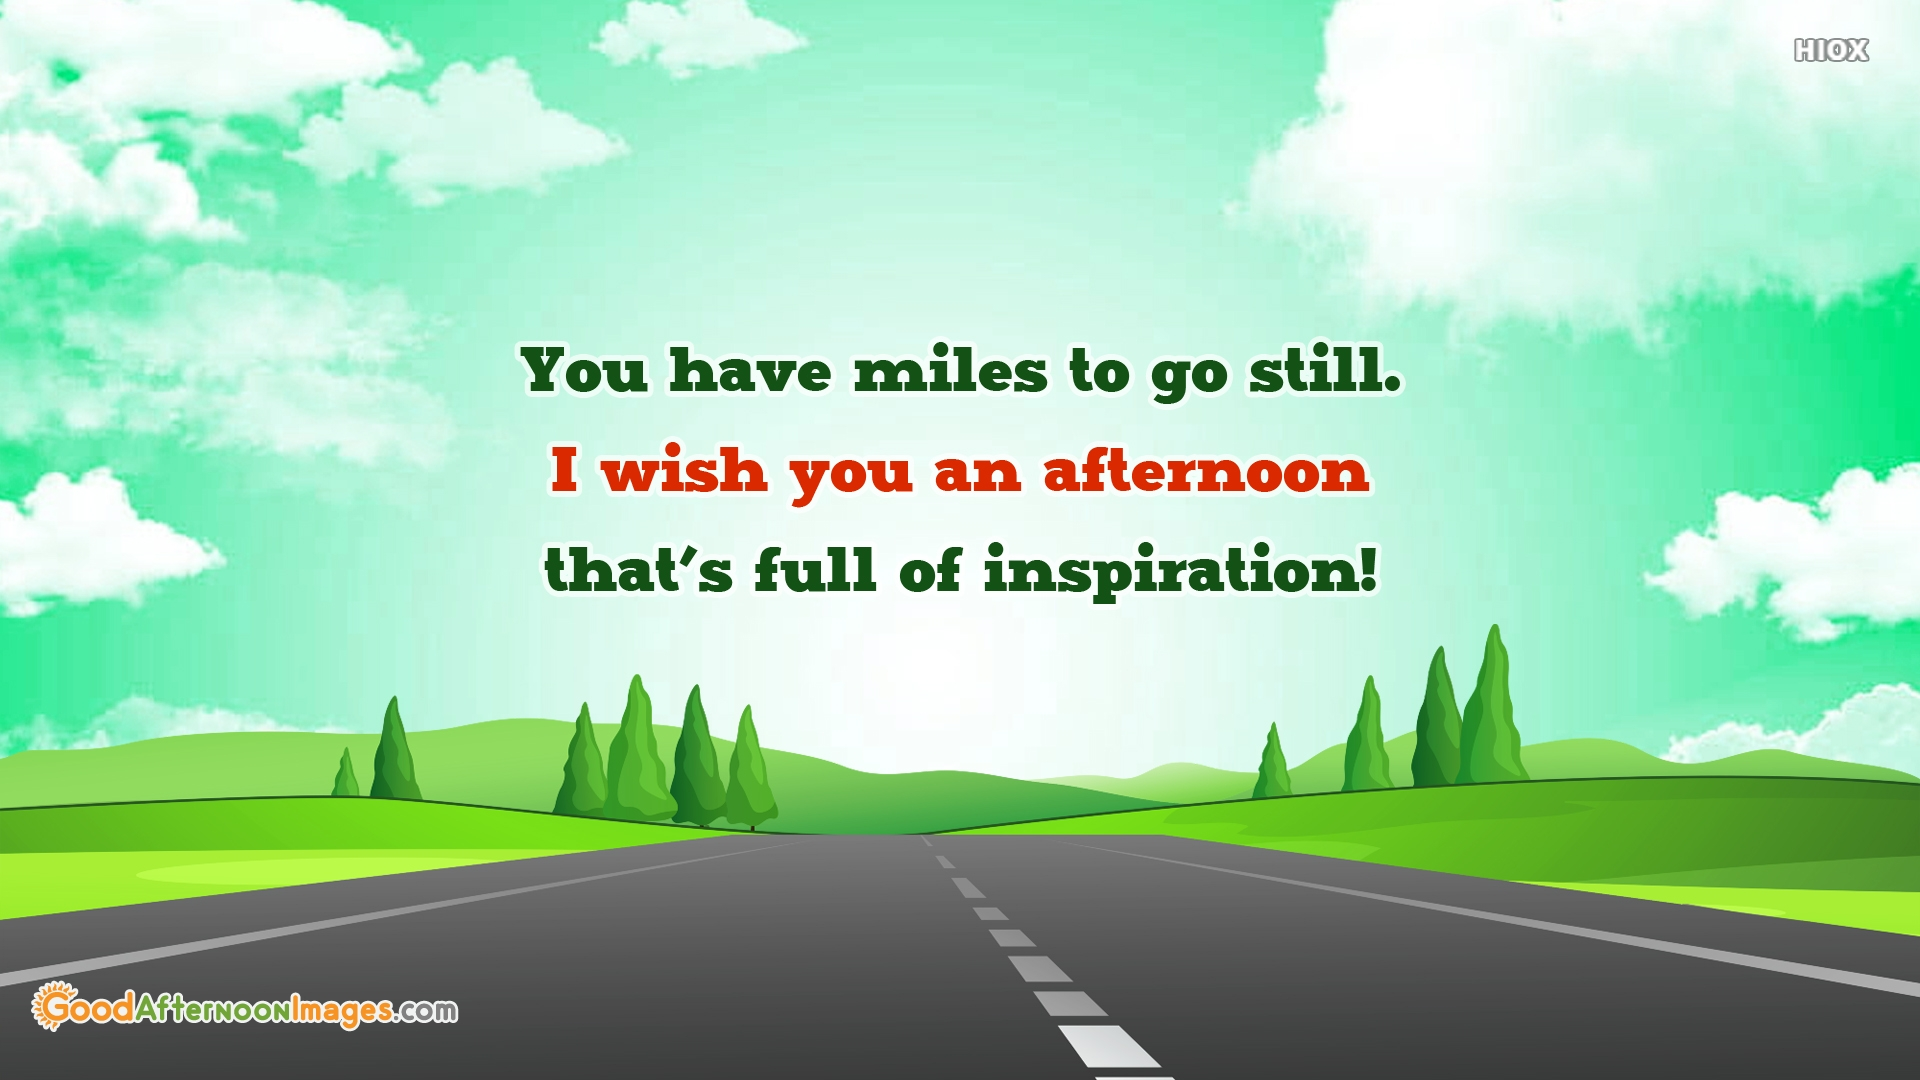 You Have Miles To Go Still. I Wish You An Afternoon That's Full Of Inspiration!